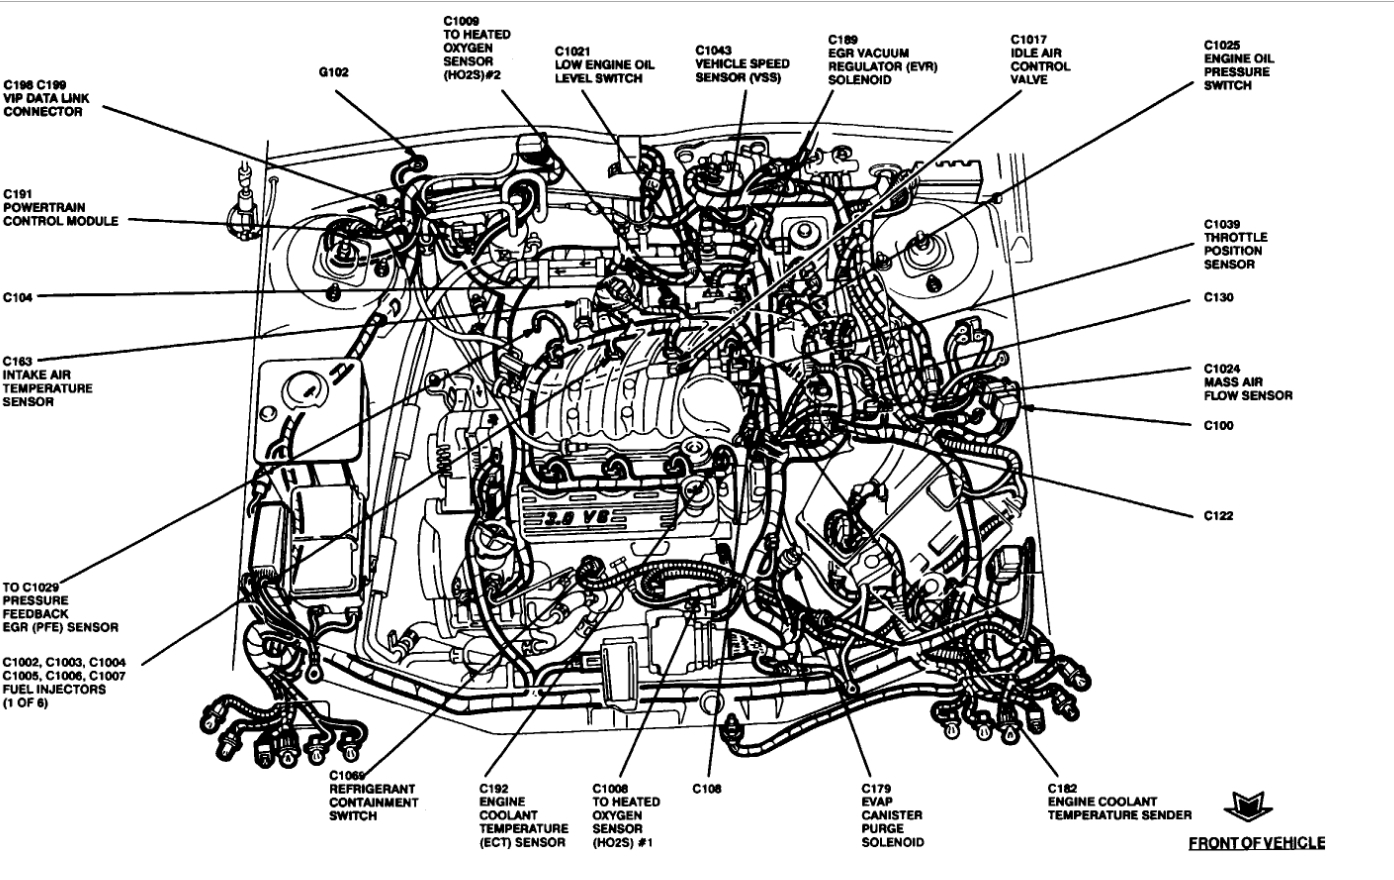 1999 Ford Taurus Engine Diagram Wiring Diagram Shop Provider Shop Provider Networkantidiscriminazione It